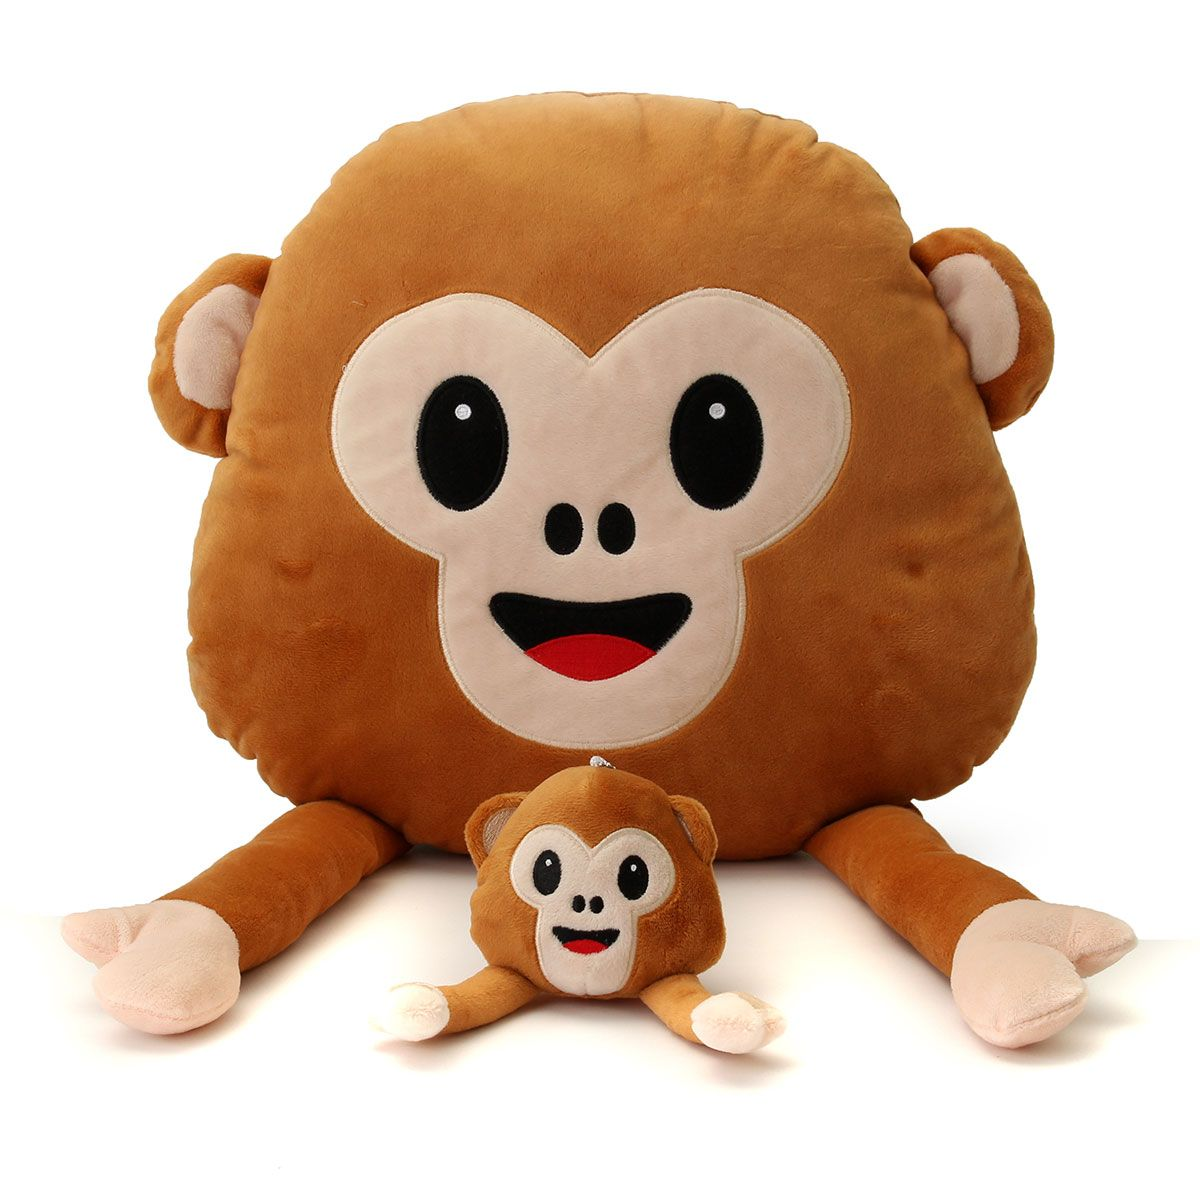 Car hanging soft toys  Monkey Emoji Emoticon Throw Plush Stuffed Toy Doll Decor Gift  Cute